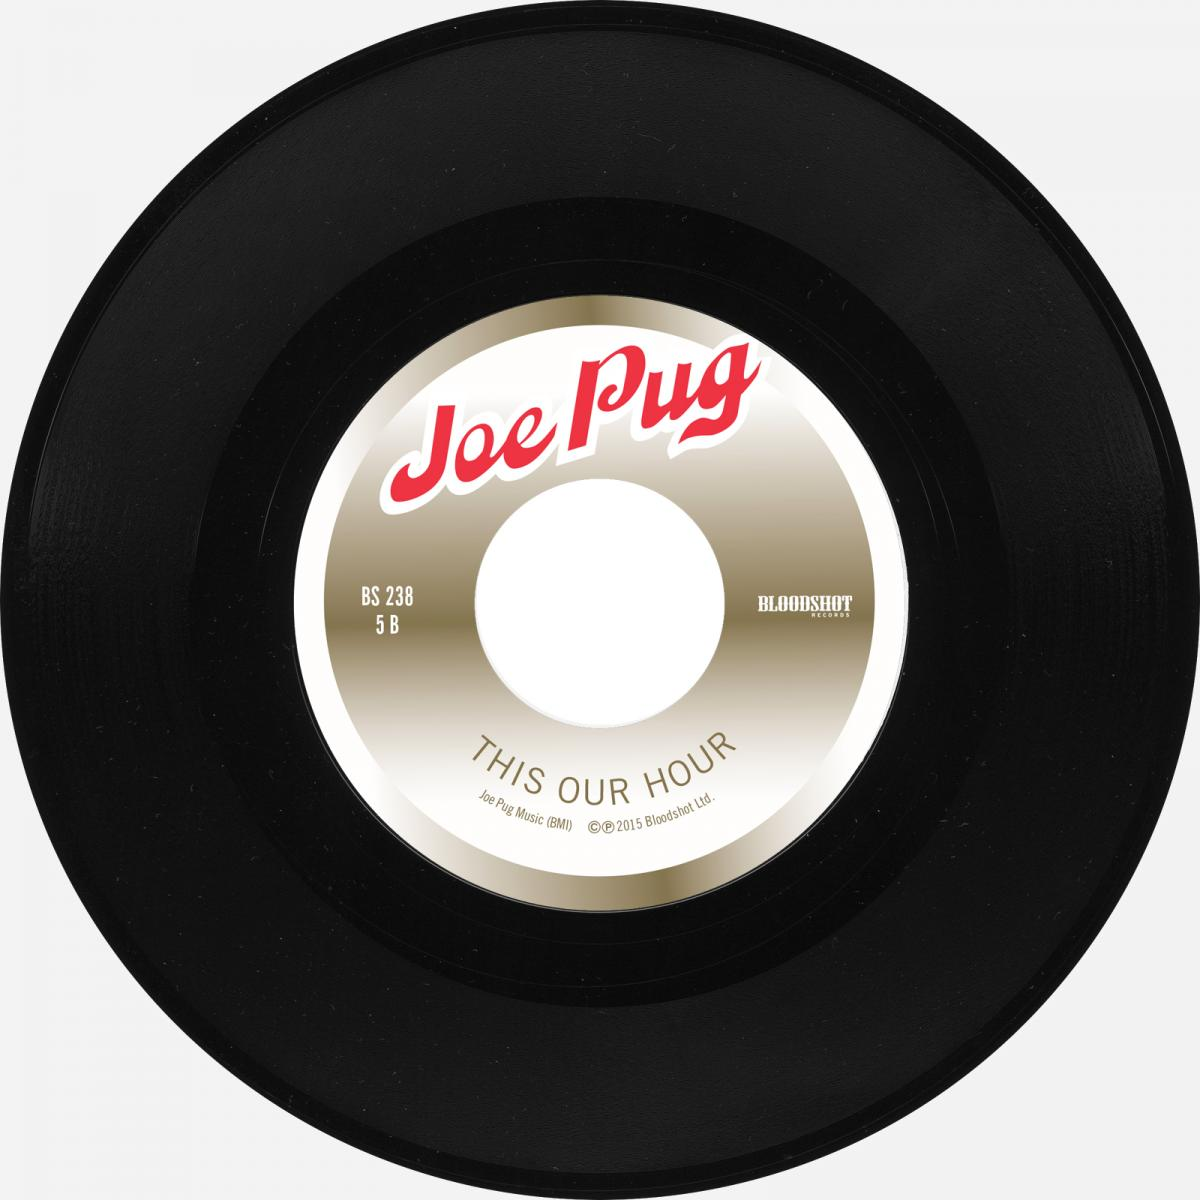 "Joe Pug This Our Hour Bloodshot Six Pack to Go 7"" Single"